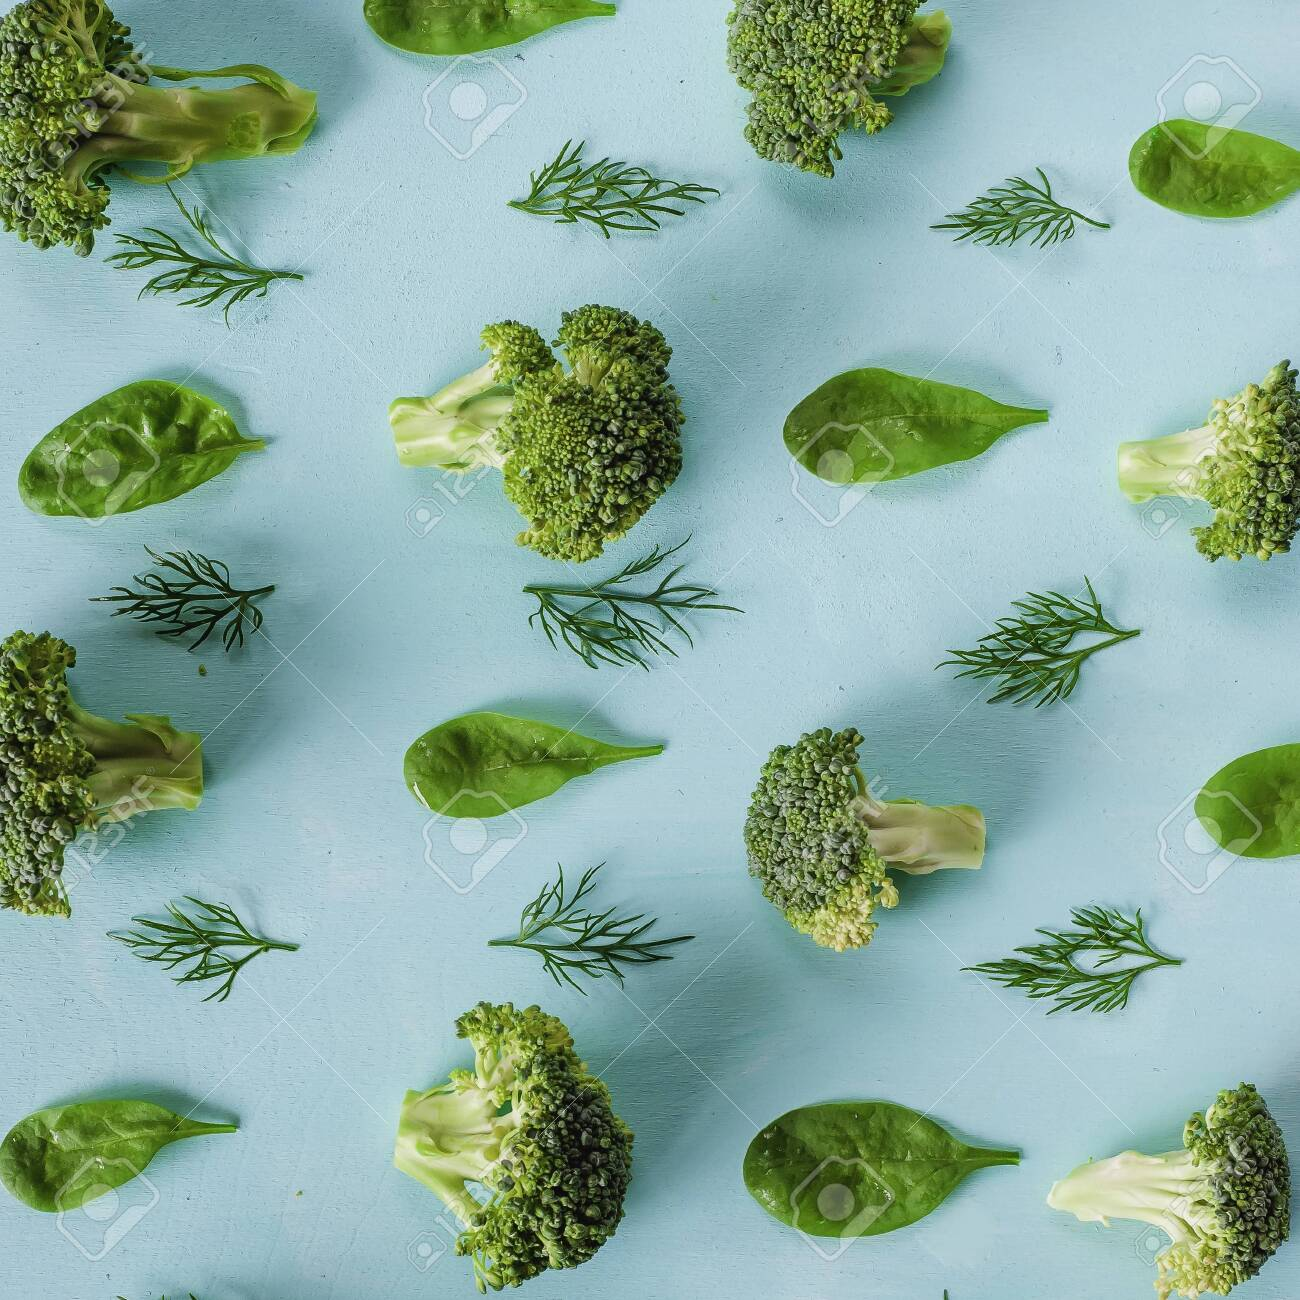 pattern with broccoli, spinach and dill. Vegetables abstract background. Broccoli on the green background. - 151138809